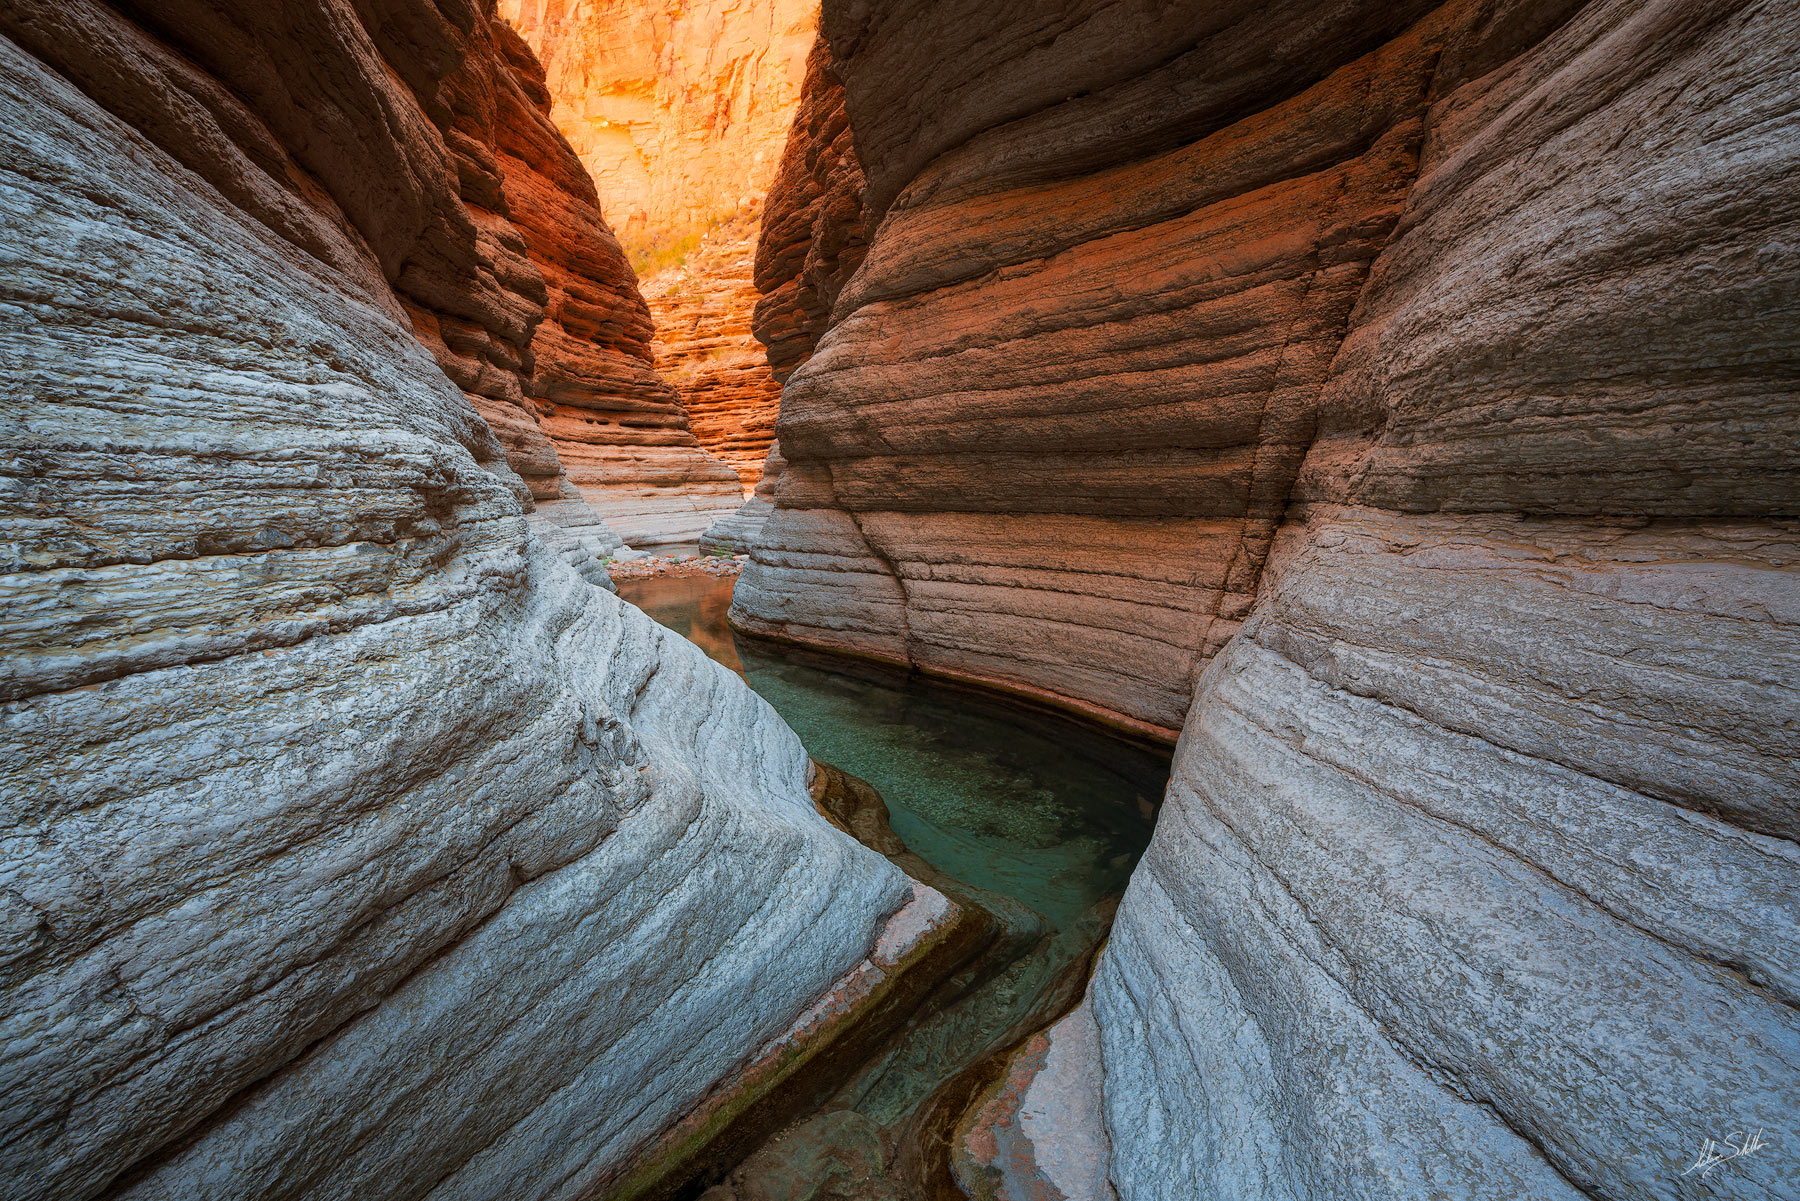 Water flows through a slot canyon. From Matkatamiba Canyon in Grand Canyon National Park in Arizona. Photo © Adam Schallau...